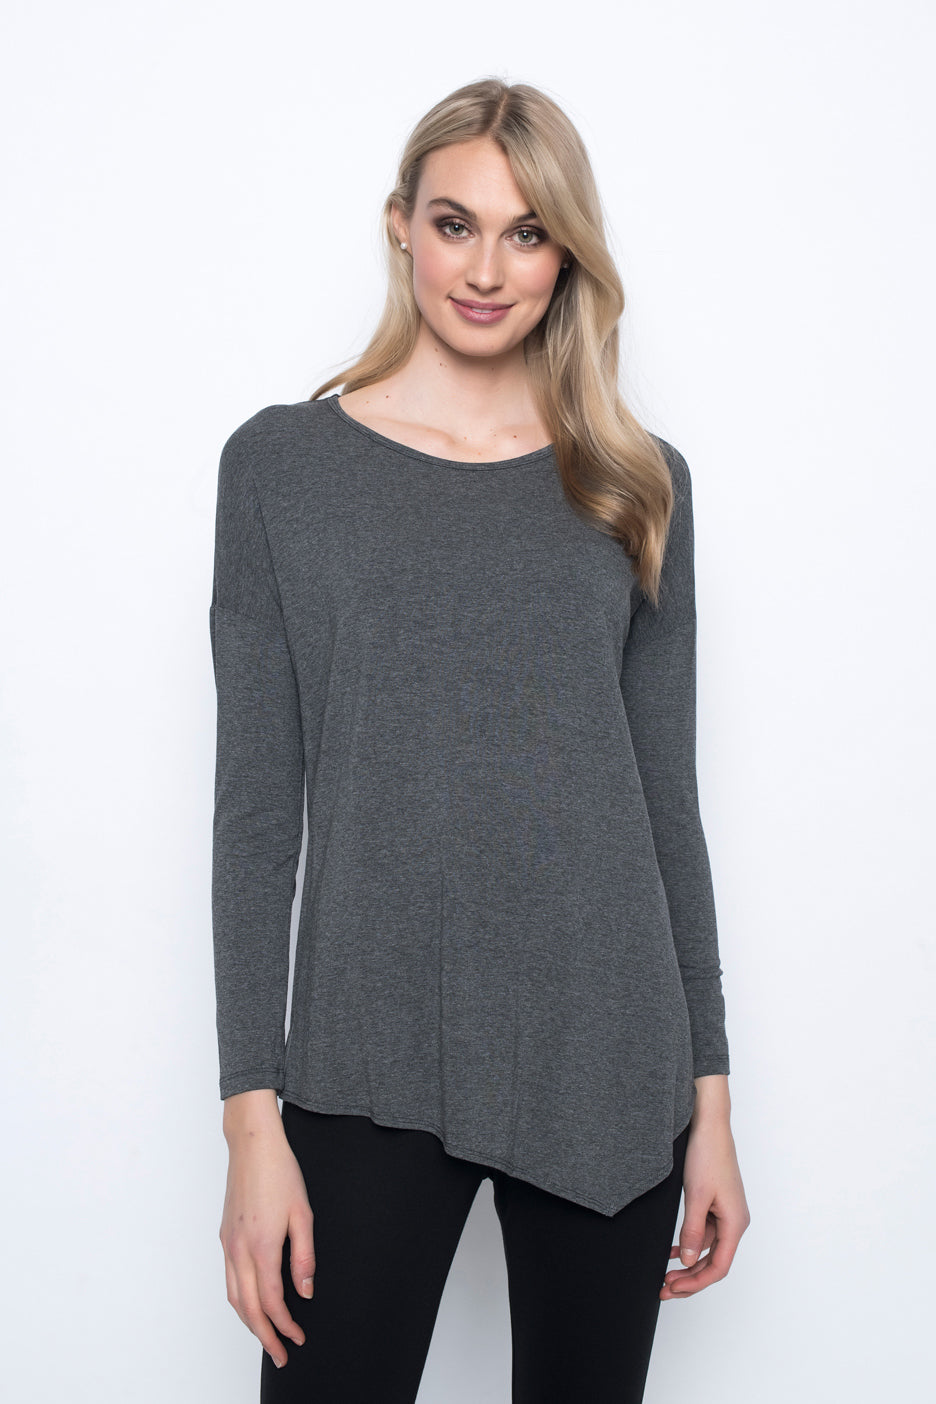 Asymmetric Hem Top in grey by Picadilly canada